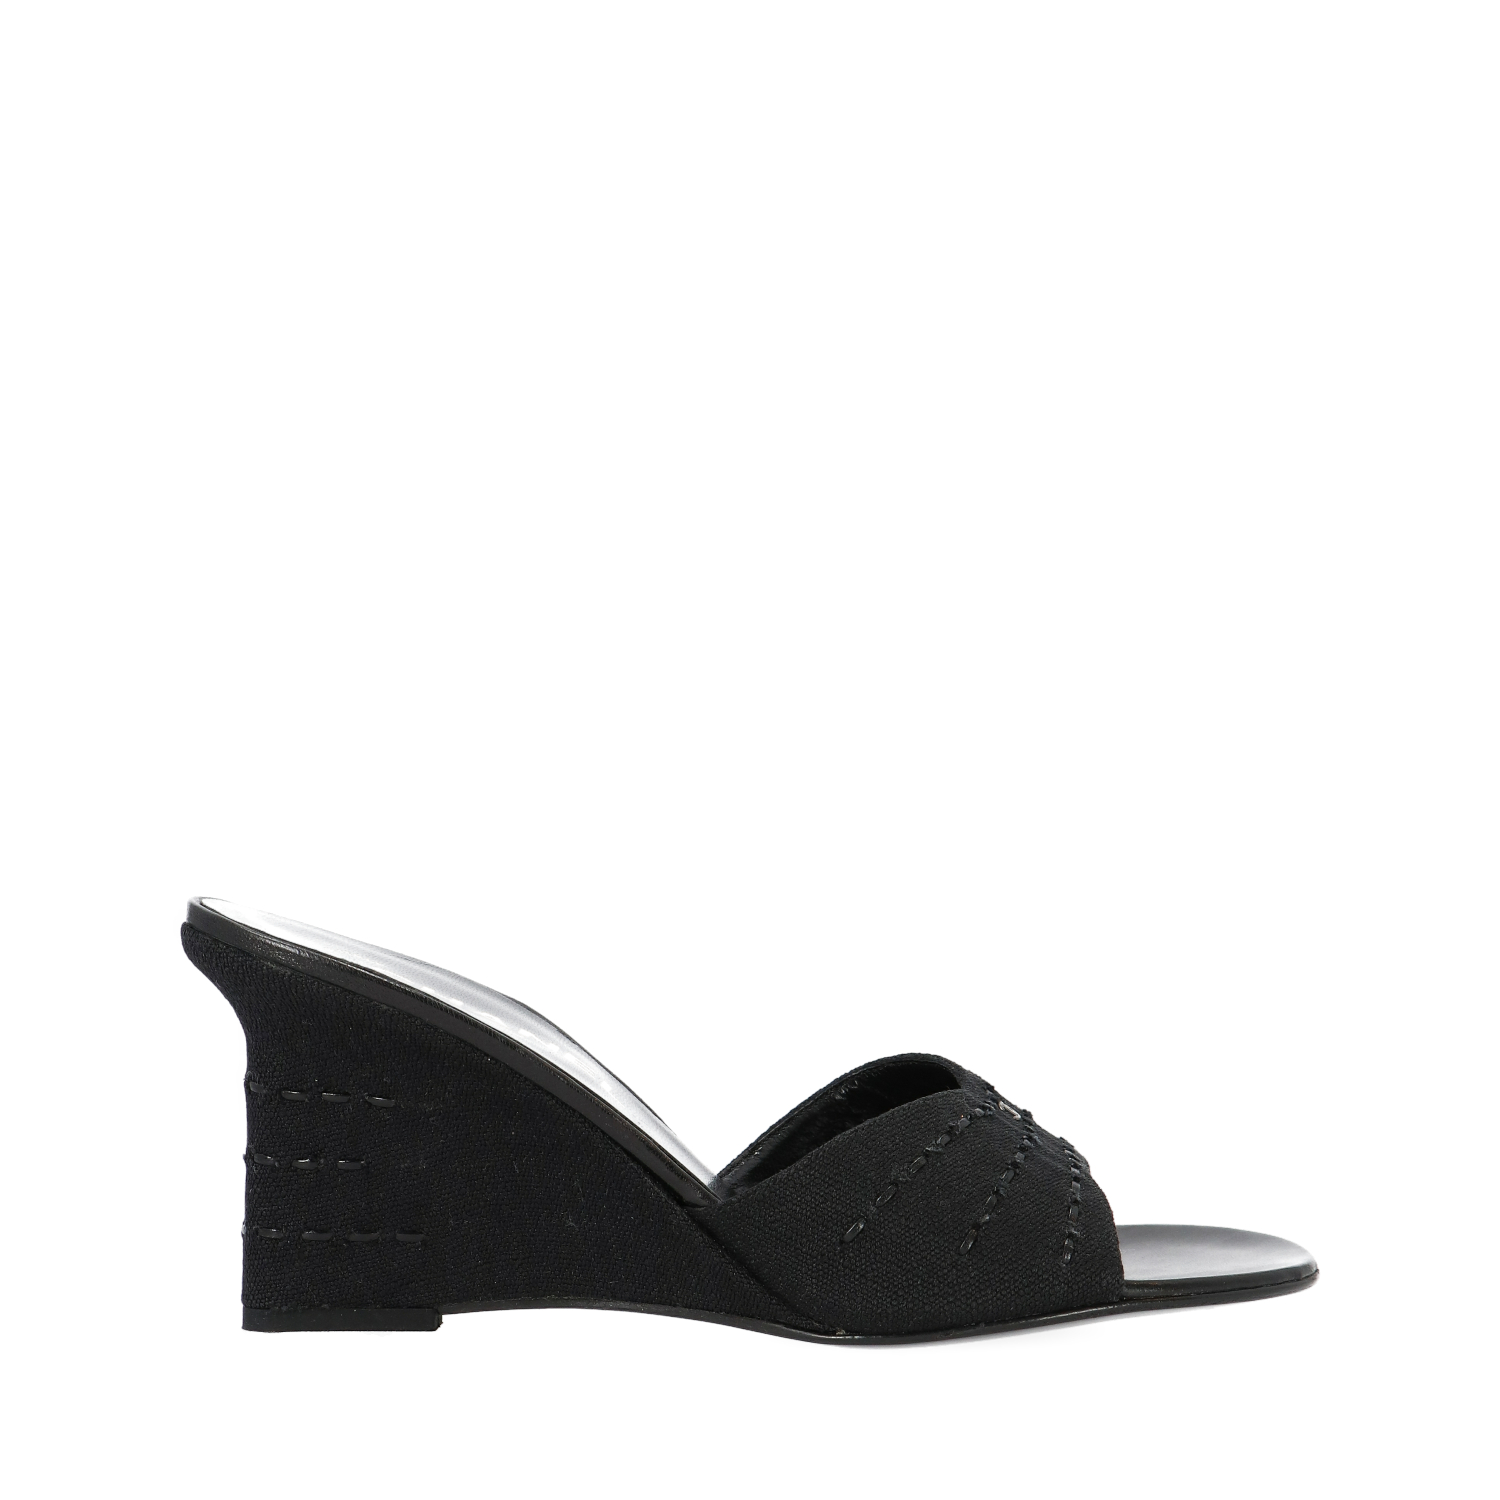 Black Open Toe Wedge Sandals